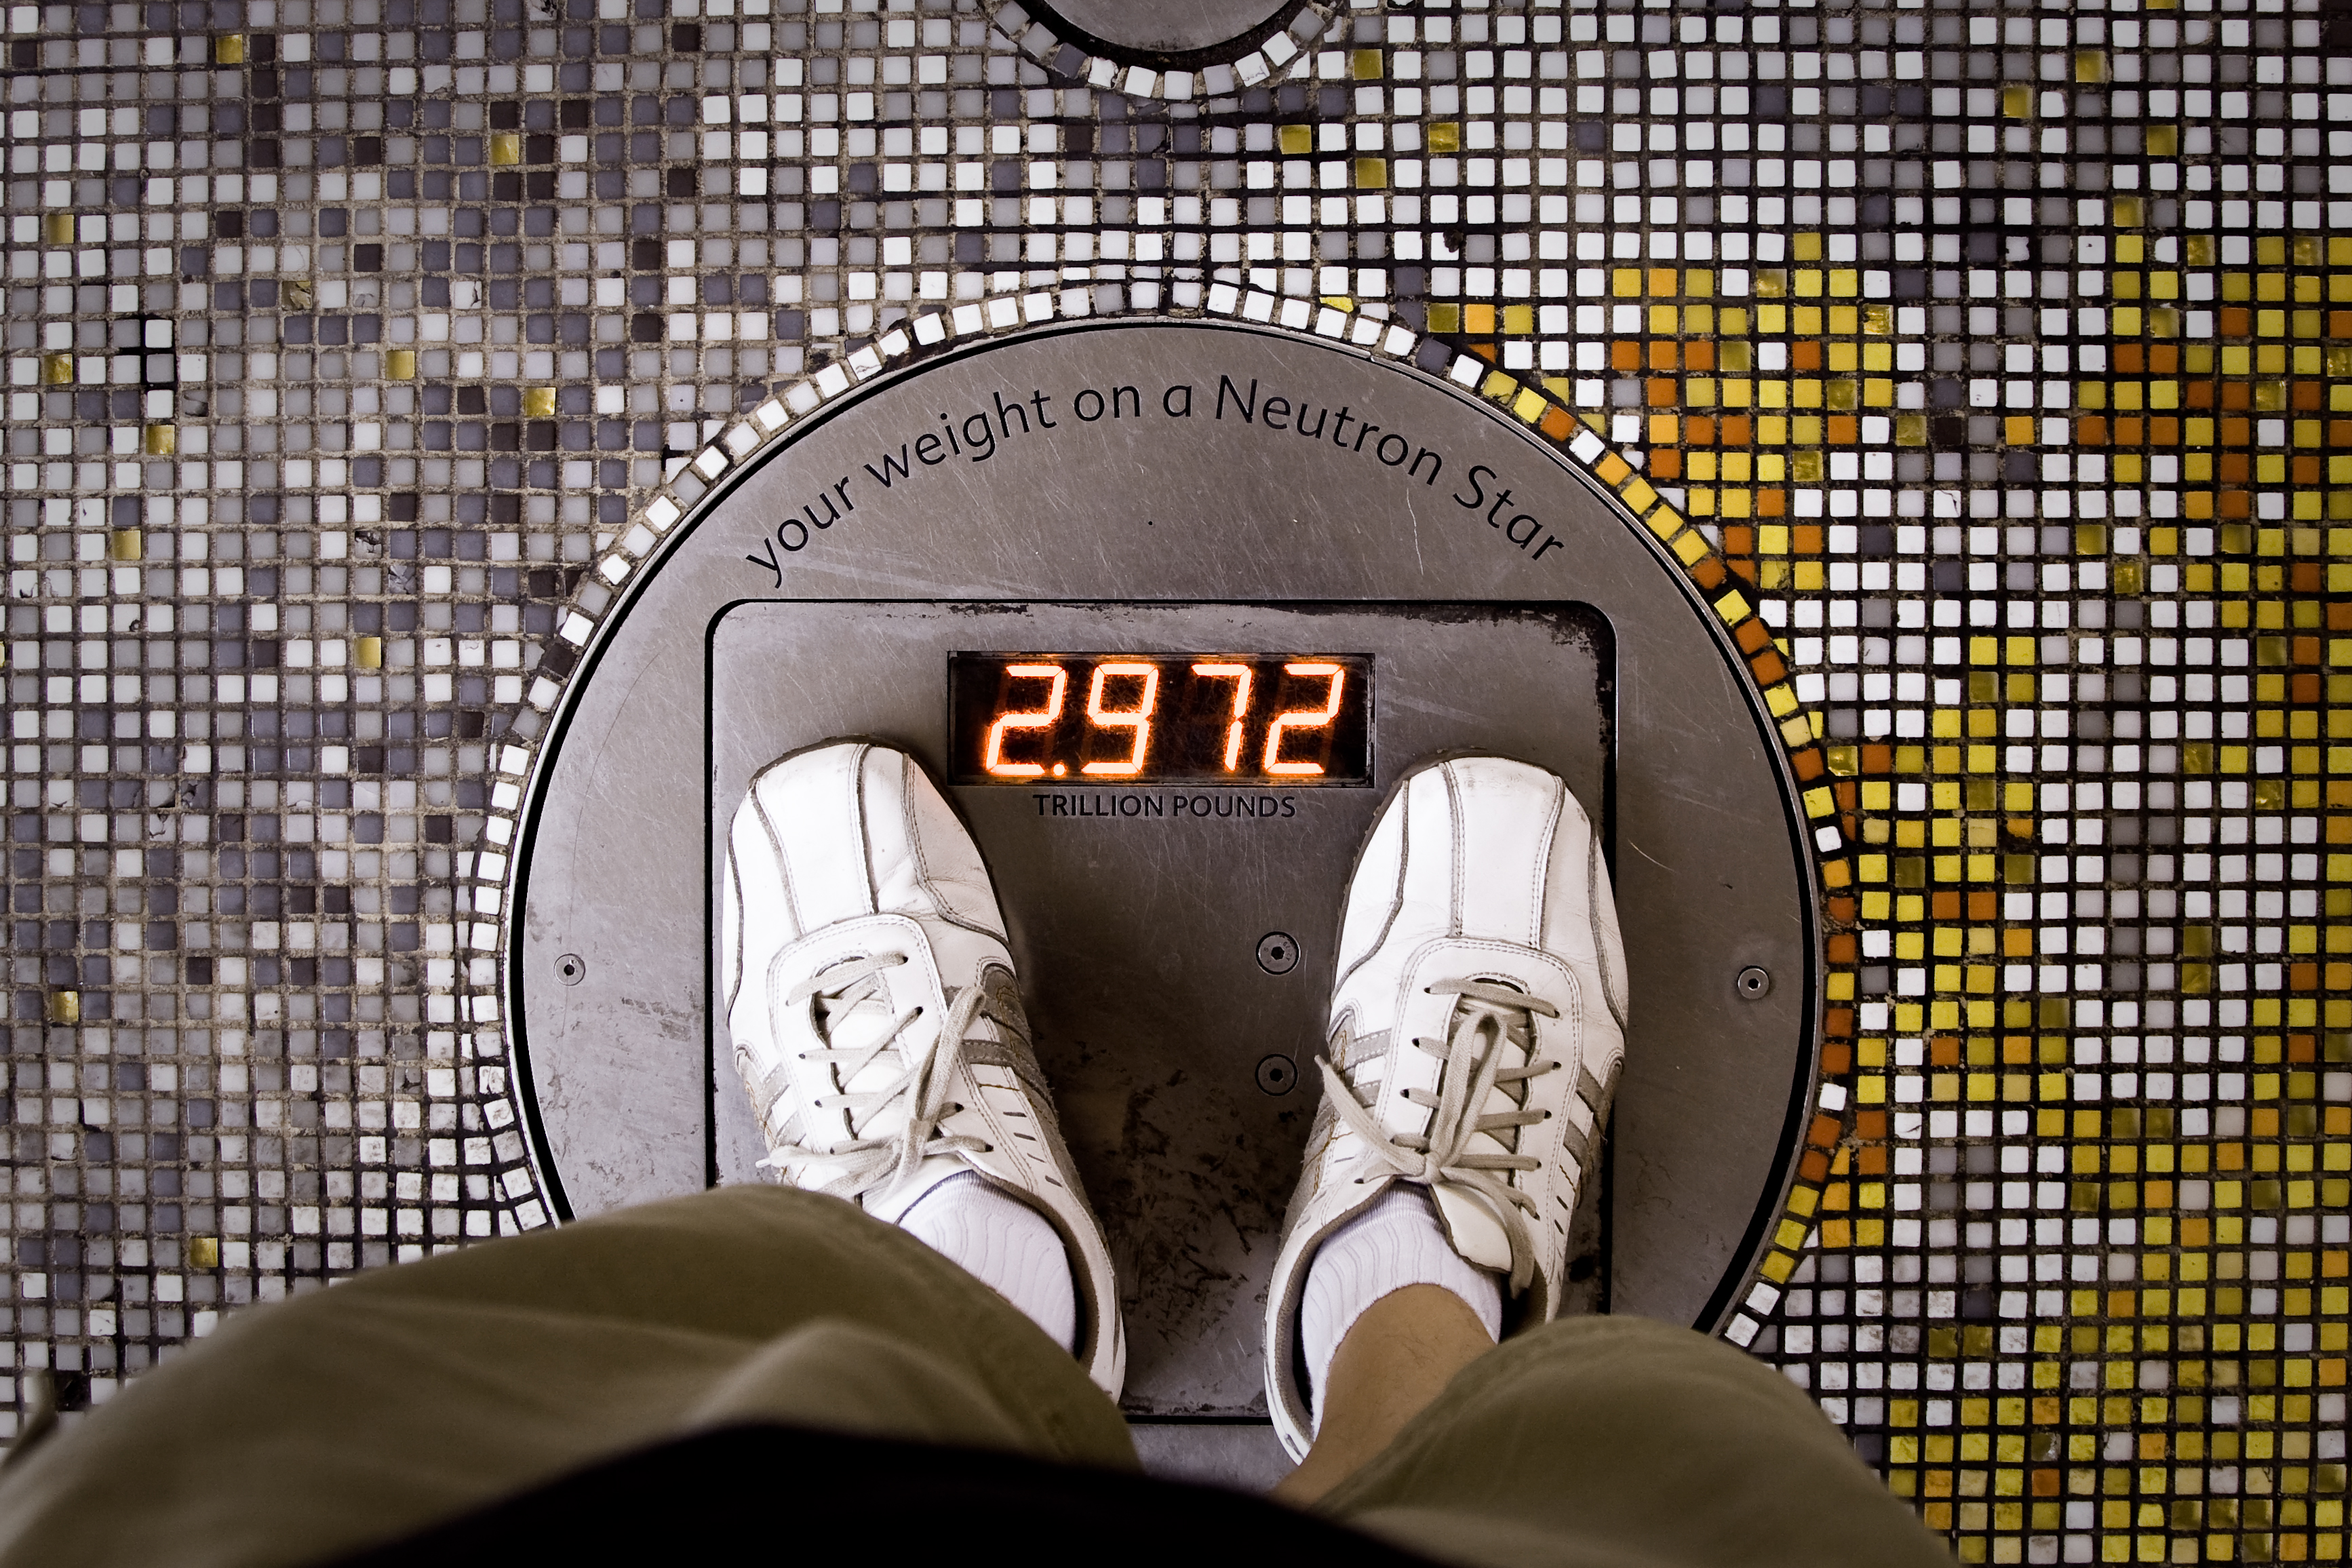 Need to lose weight extremely fast